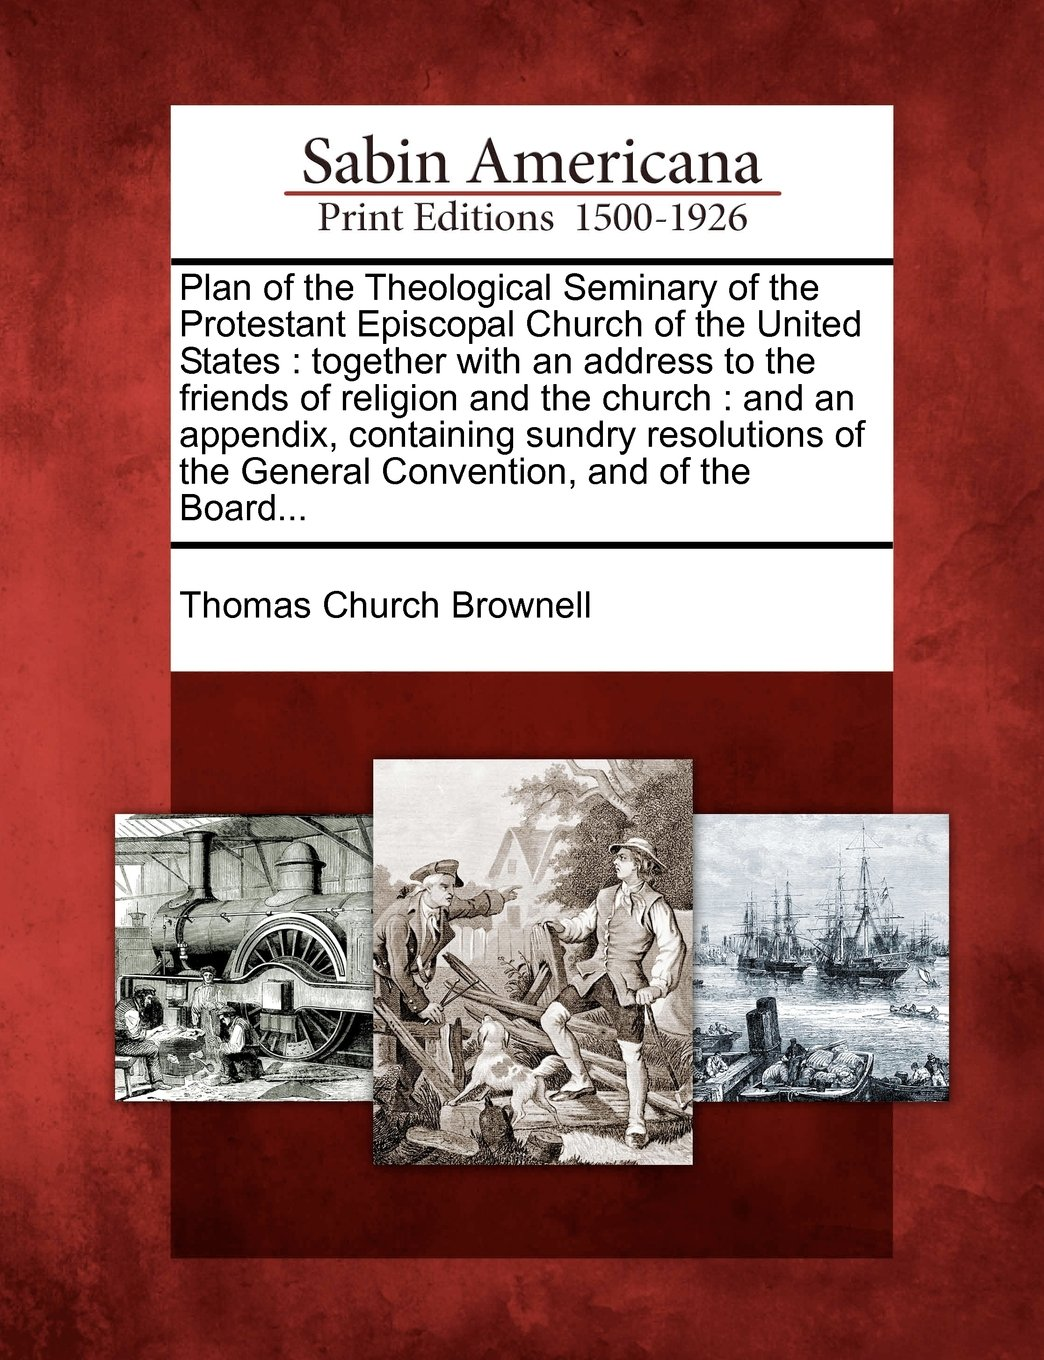 Plan of the Theological Seminary of the Protestant Episcopal Church of the United States: together with an address to the friends of religion and the ... the General Convention, and of the Board... PDF